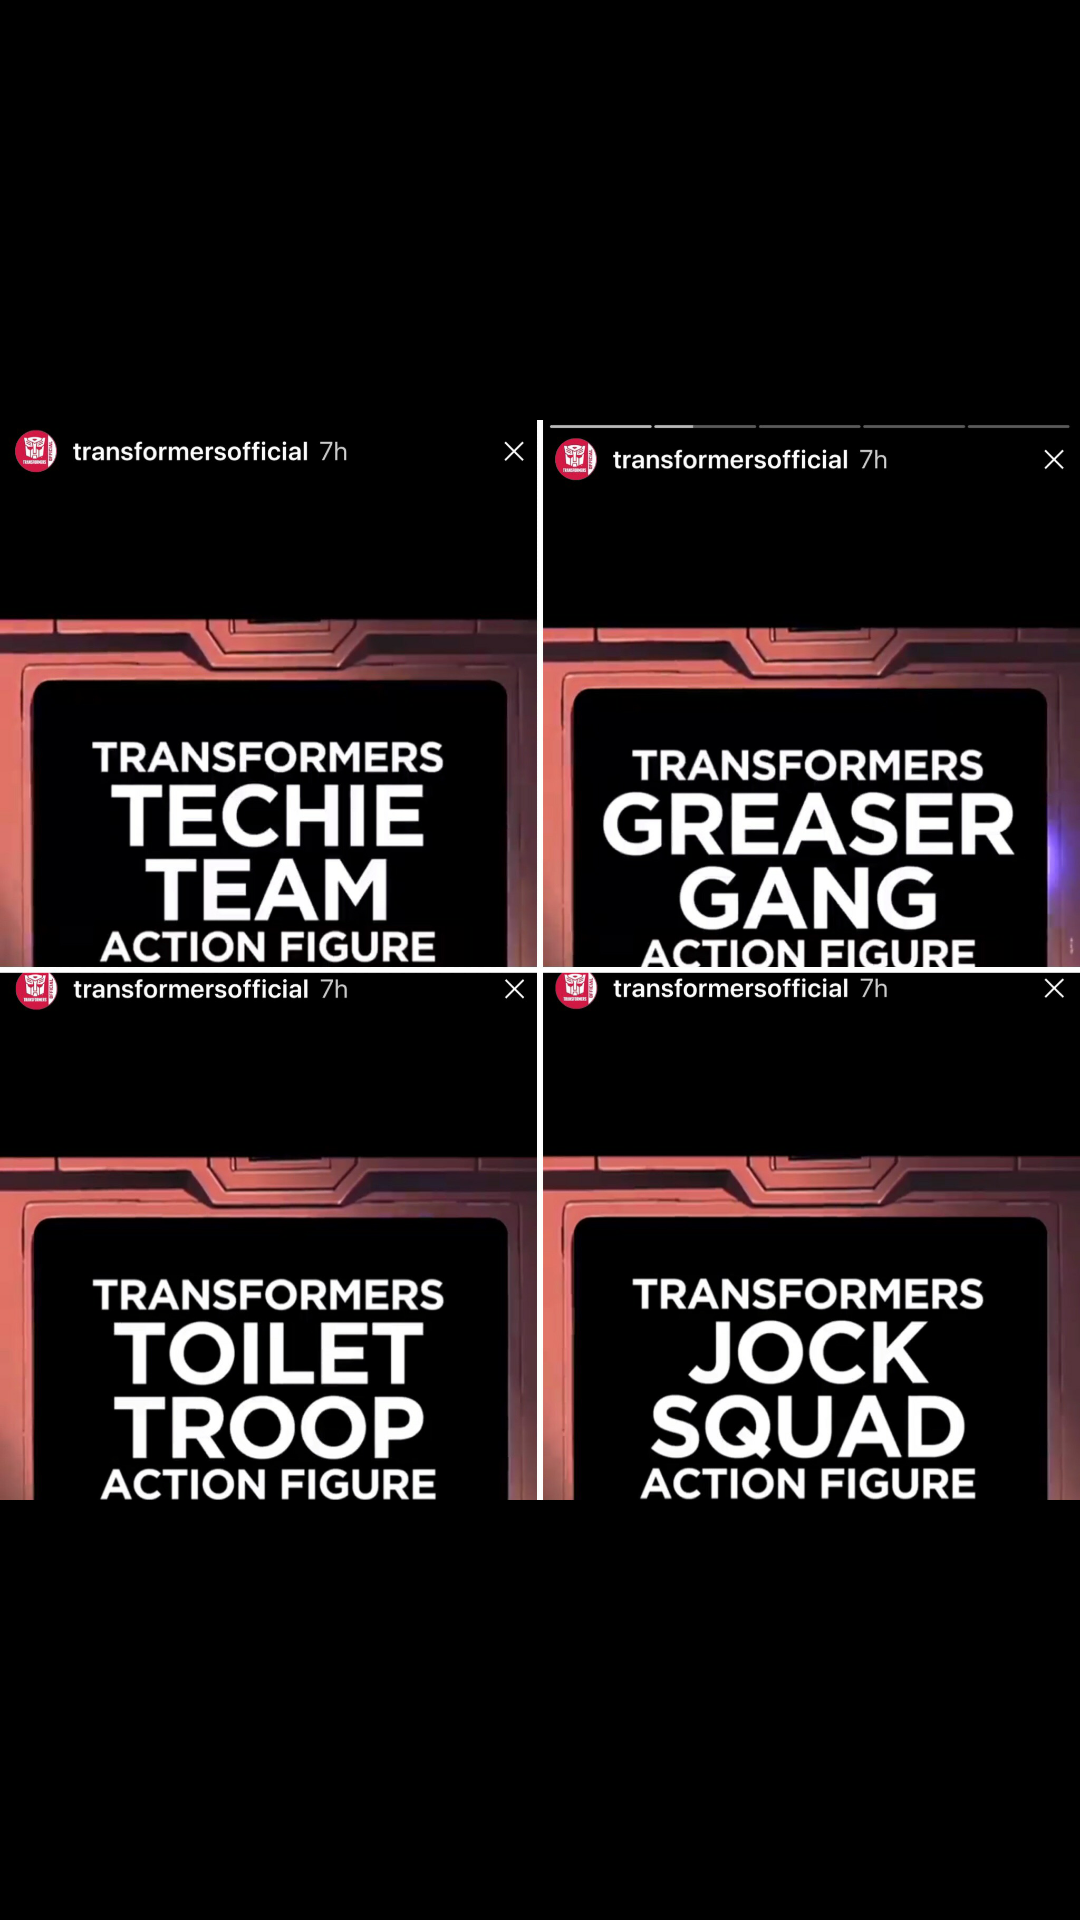 Transformers News: Hasbro Teases Product Reveal For Strange Amazon Listings